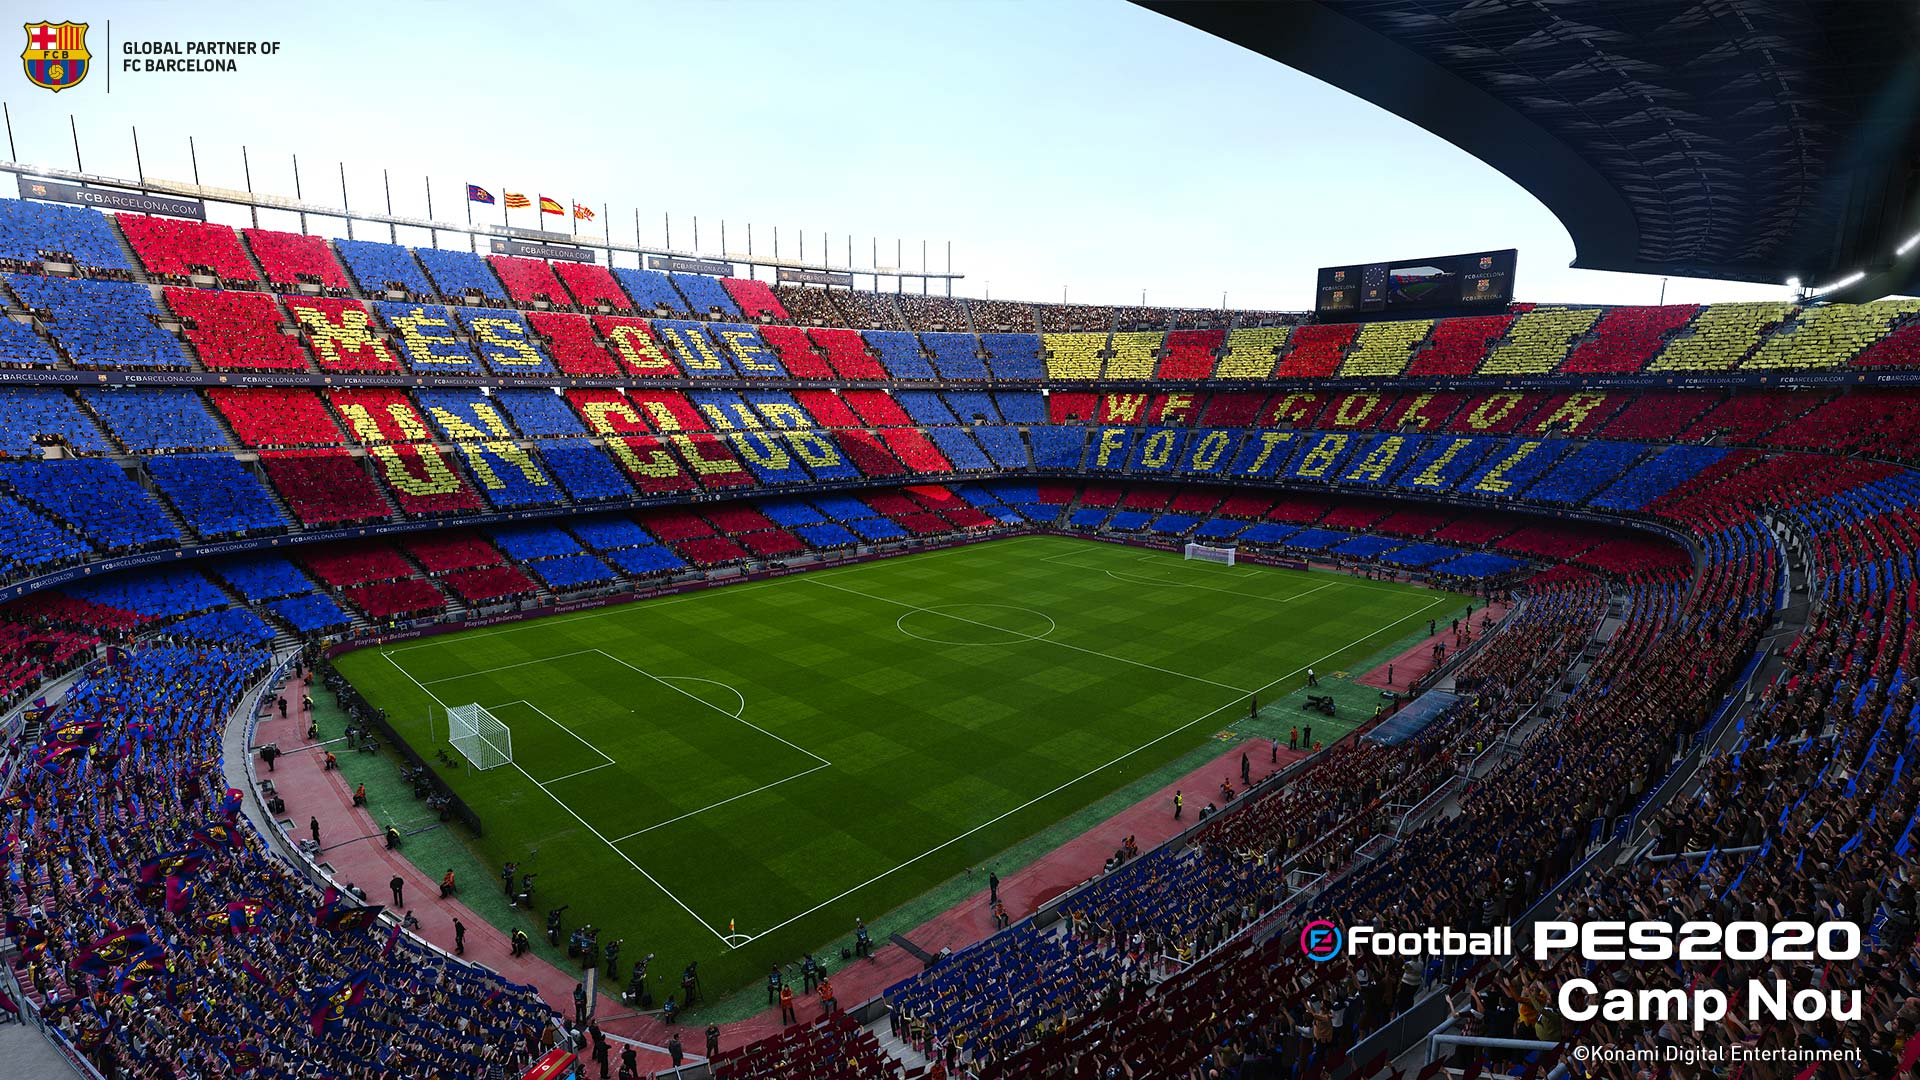 PES 2020 Camp Nou stadium